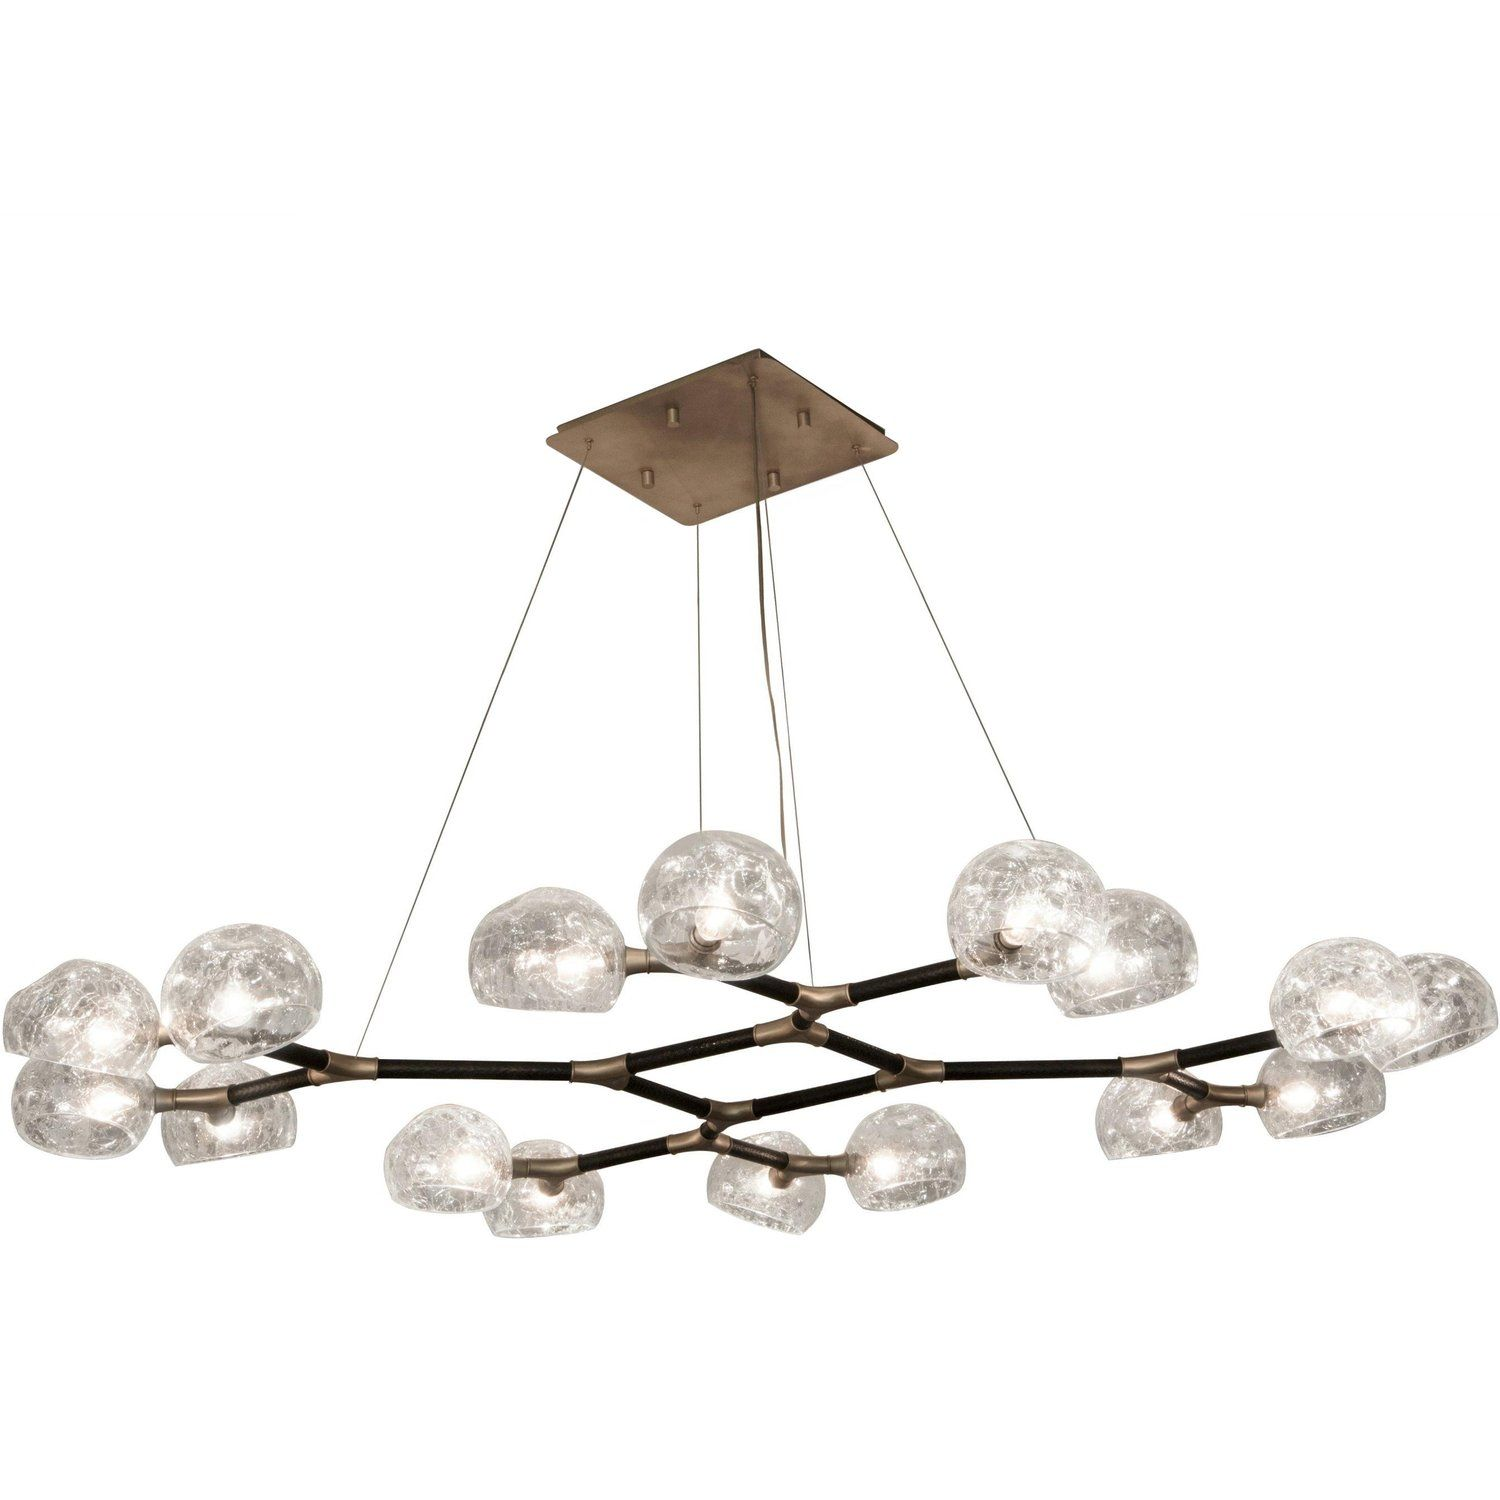 Horus Ii Suspension Light In Matte Brass With Crackle Glass Shade Glass Shades Contemporary Ceiling Light Round Pendant Light